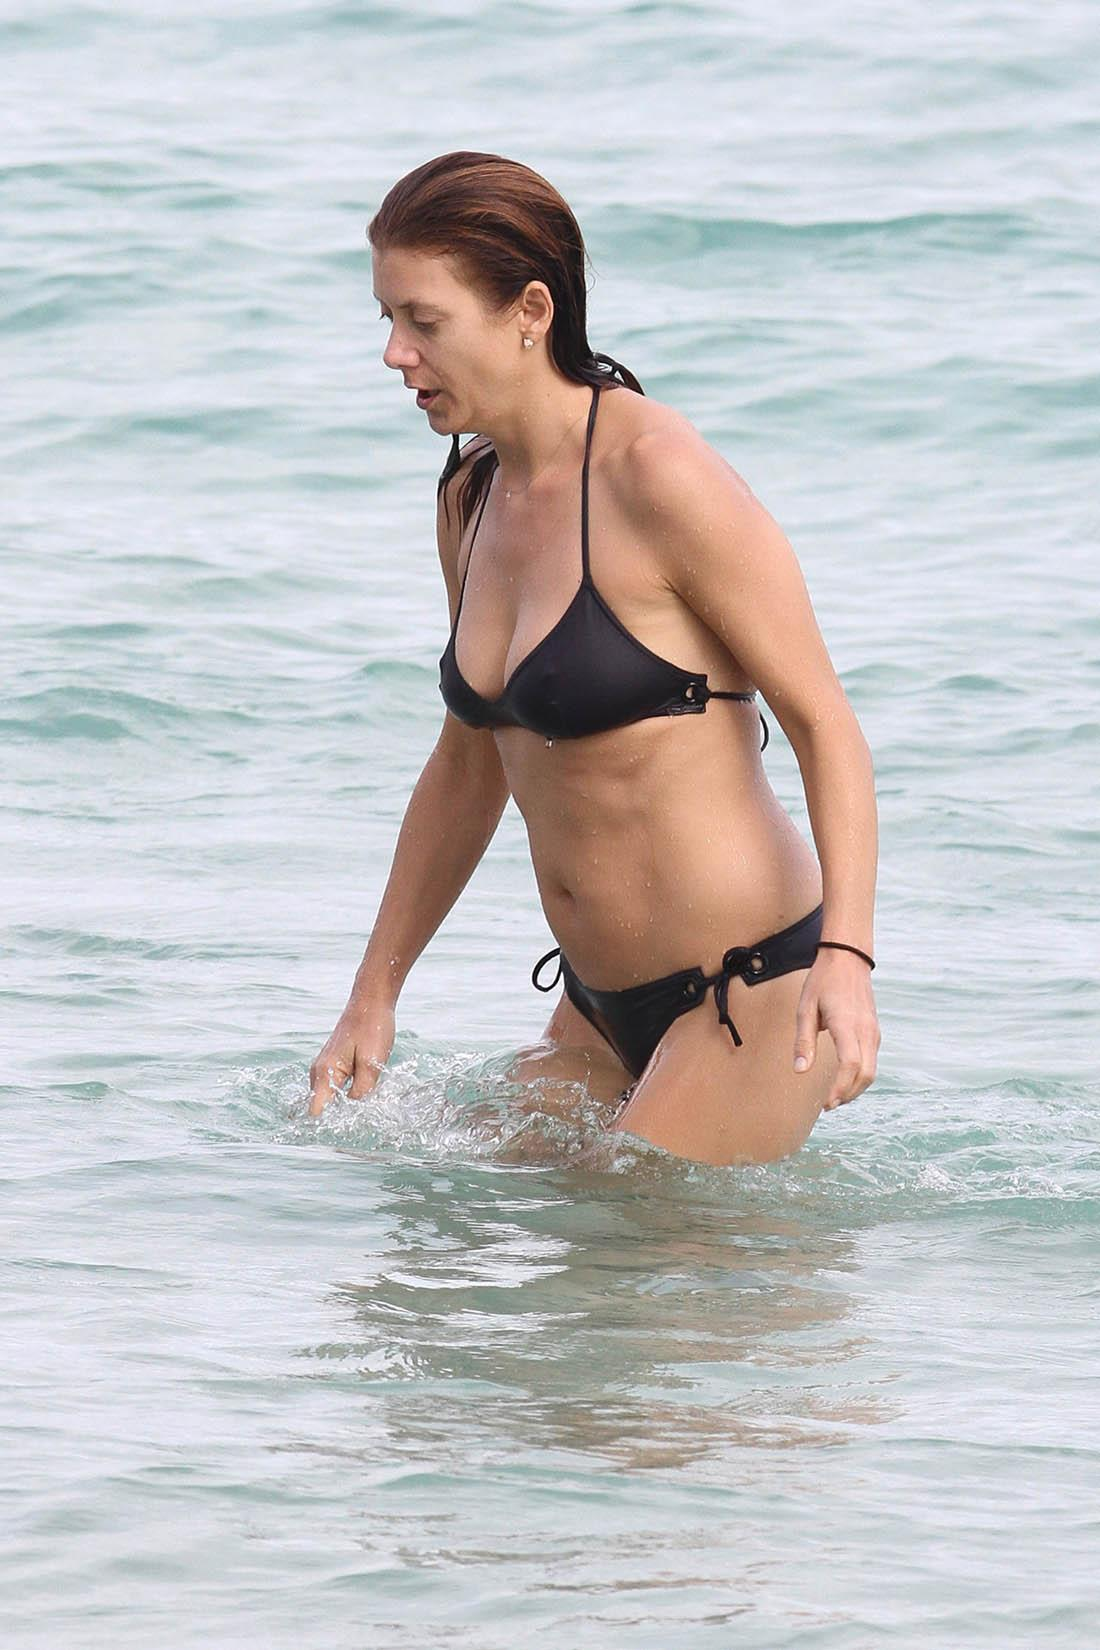 Apprentice kate walsh bikini pegging men